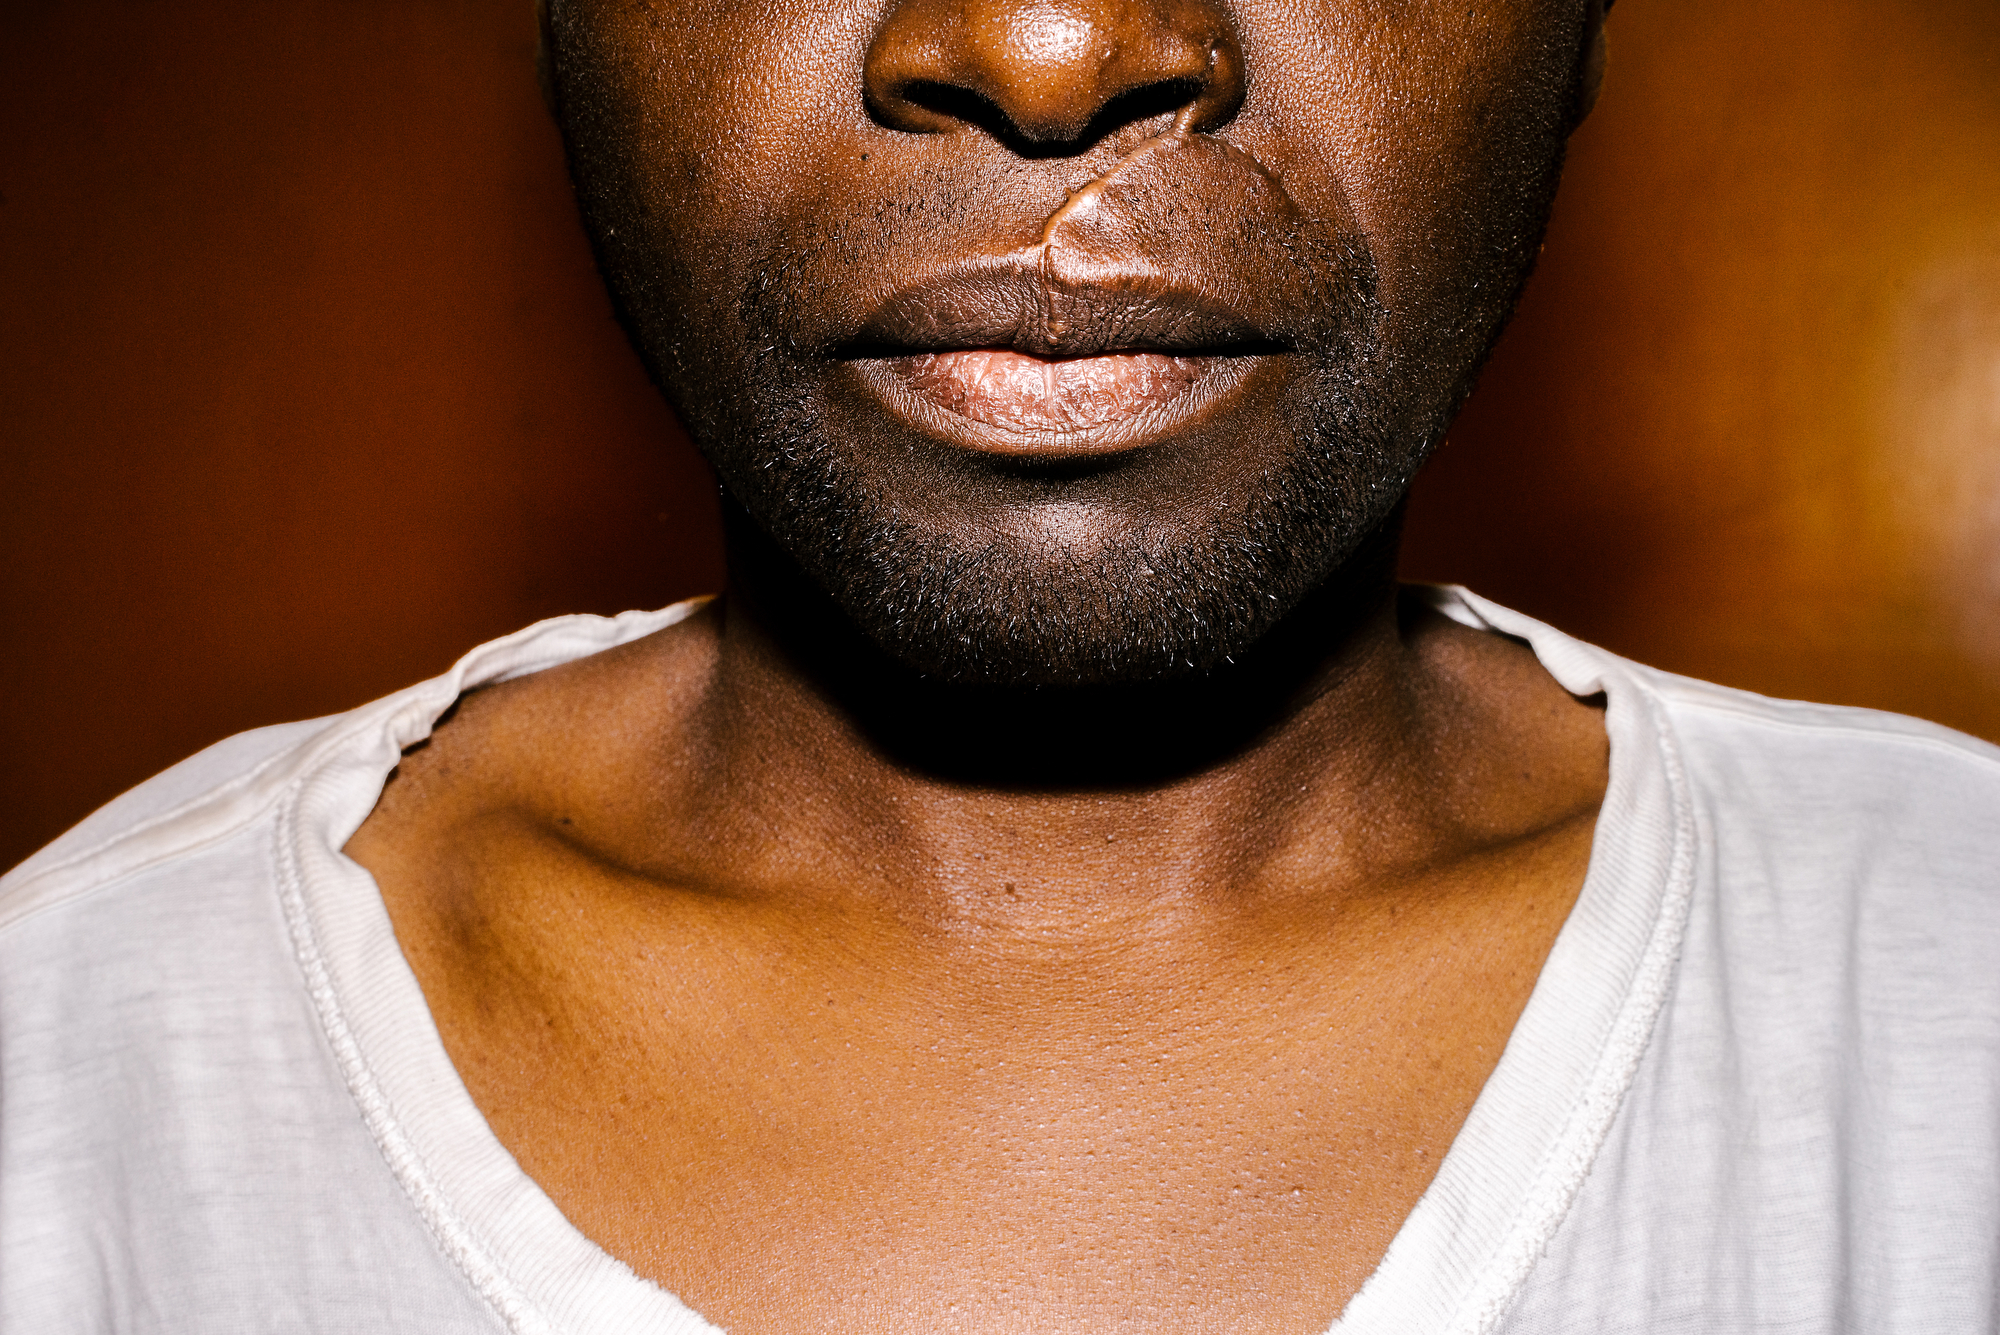 Soon after arriving in Kenya, S. was attacked by seven men with machetes. Here, he poses for a portrait in an apartment he shared with his boyfriend, with one scar from the attack clearly visible. Others on his face and chest are not seen.